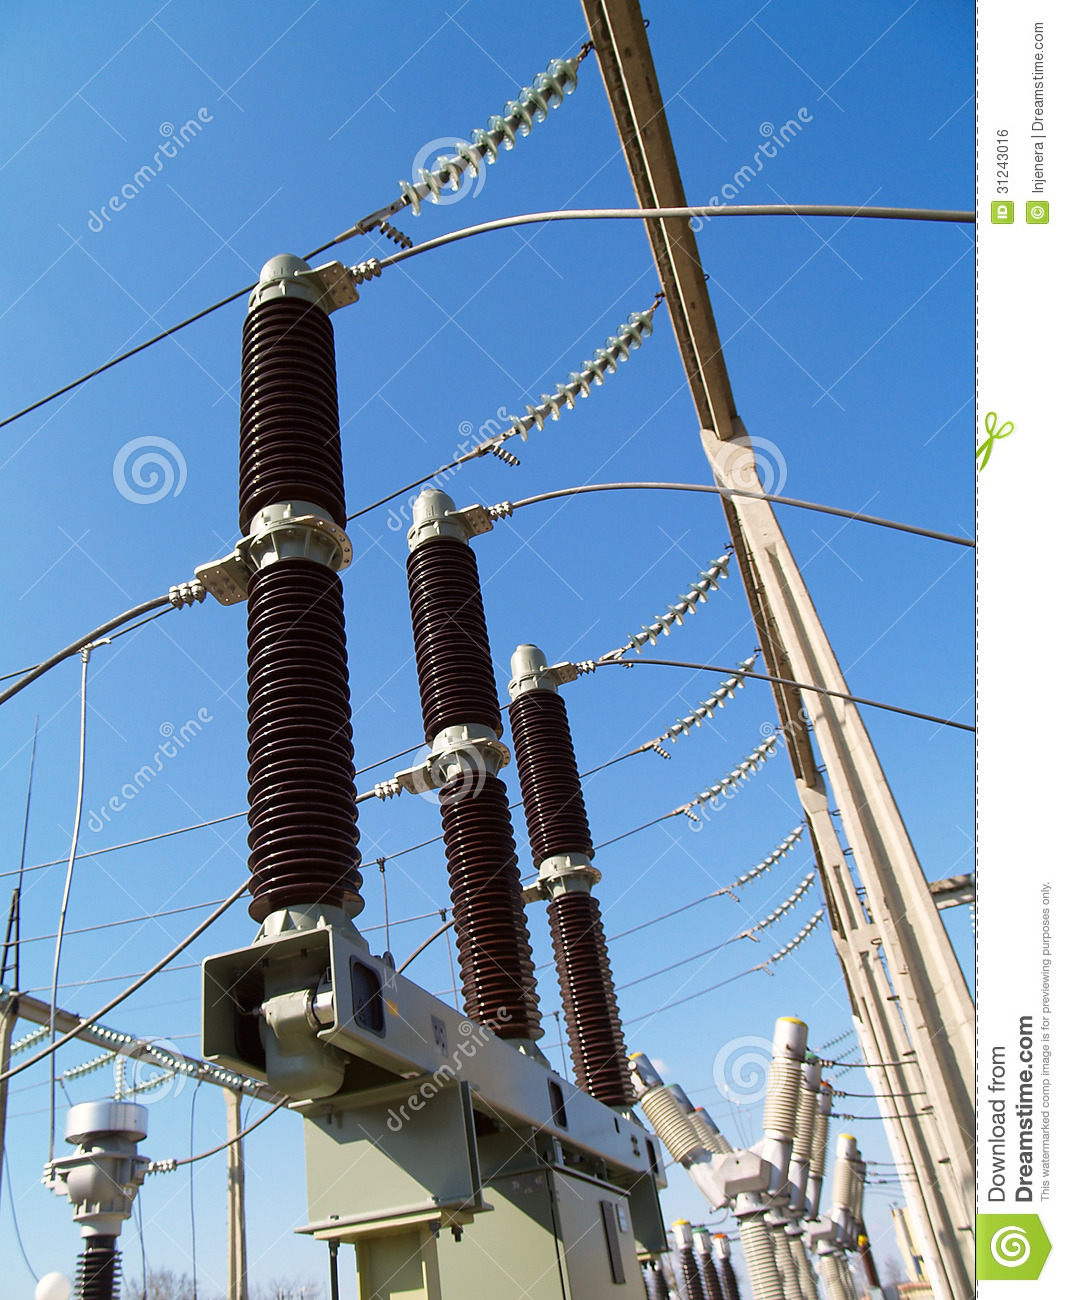 Automatic Circuit Breaker Royalty Free Stock Photos Image 18316278